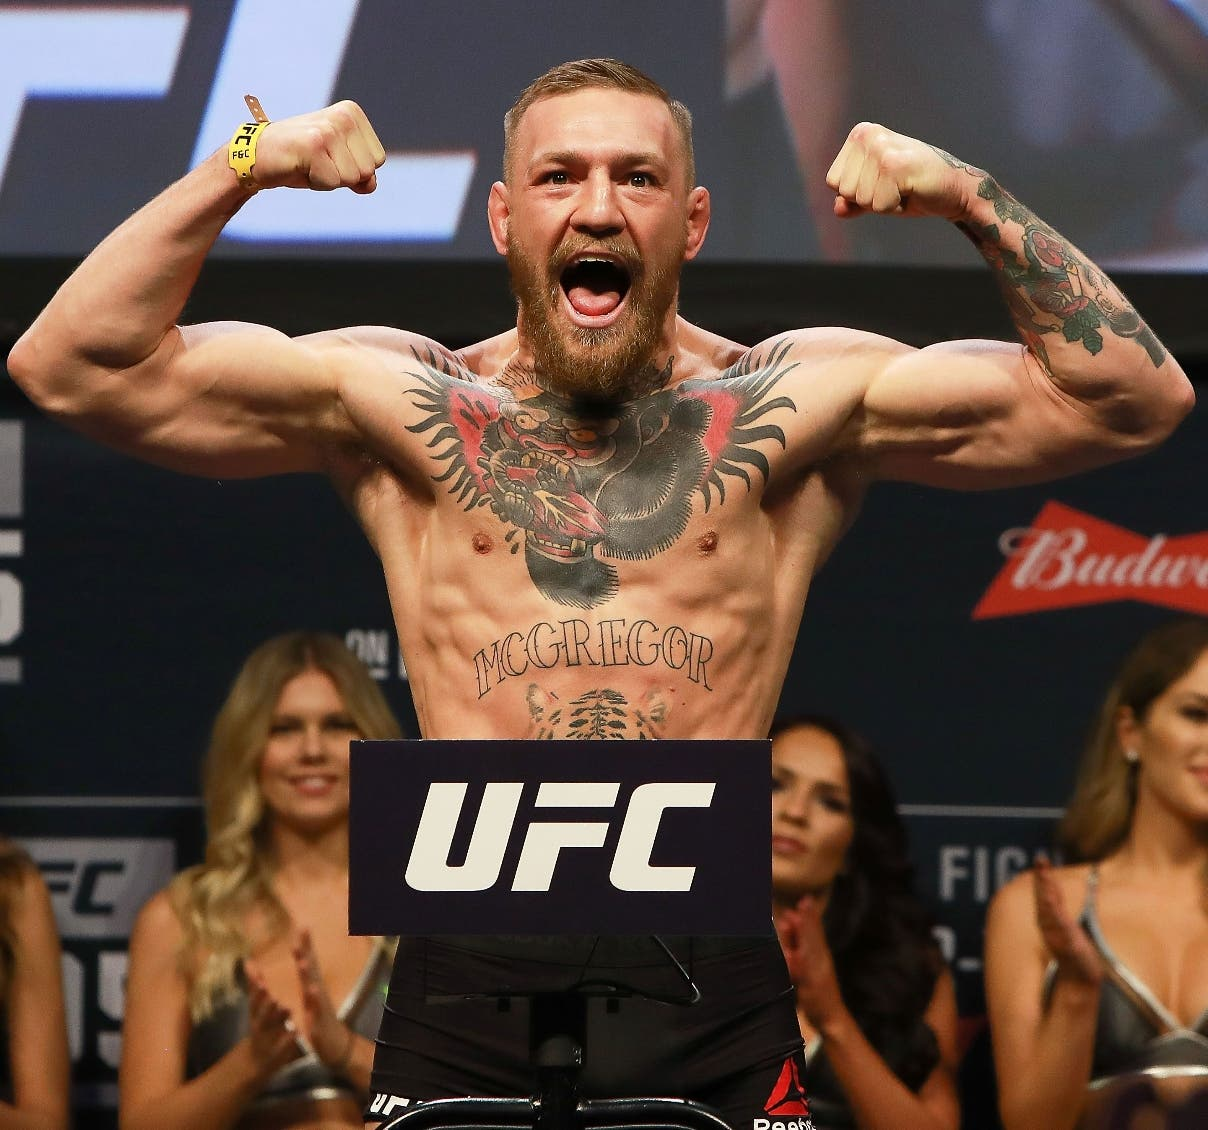 (FILES) This file photo taken on November 10, 2016 shows UFC Featherweight Champion Conor McGregor during UFC 205 Weigh-ins at Madison Square Garden in New York.    Mixed martial arts superstar Conor McGregor has been issued a boxing license in the state of California, US media reported December 30, 2016 in a development sure to revive talk of a McGregor-Floyd Mayweather meeting in the ring. ESPN and MMAjunkie.com reported that the California State Athletic Commission had confirmed a license was issued to McGregor.  / AFP / GETTY IMAGES NORTH AMERICA / Michael Reaves